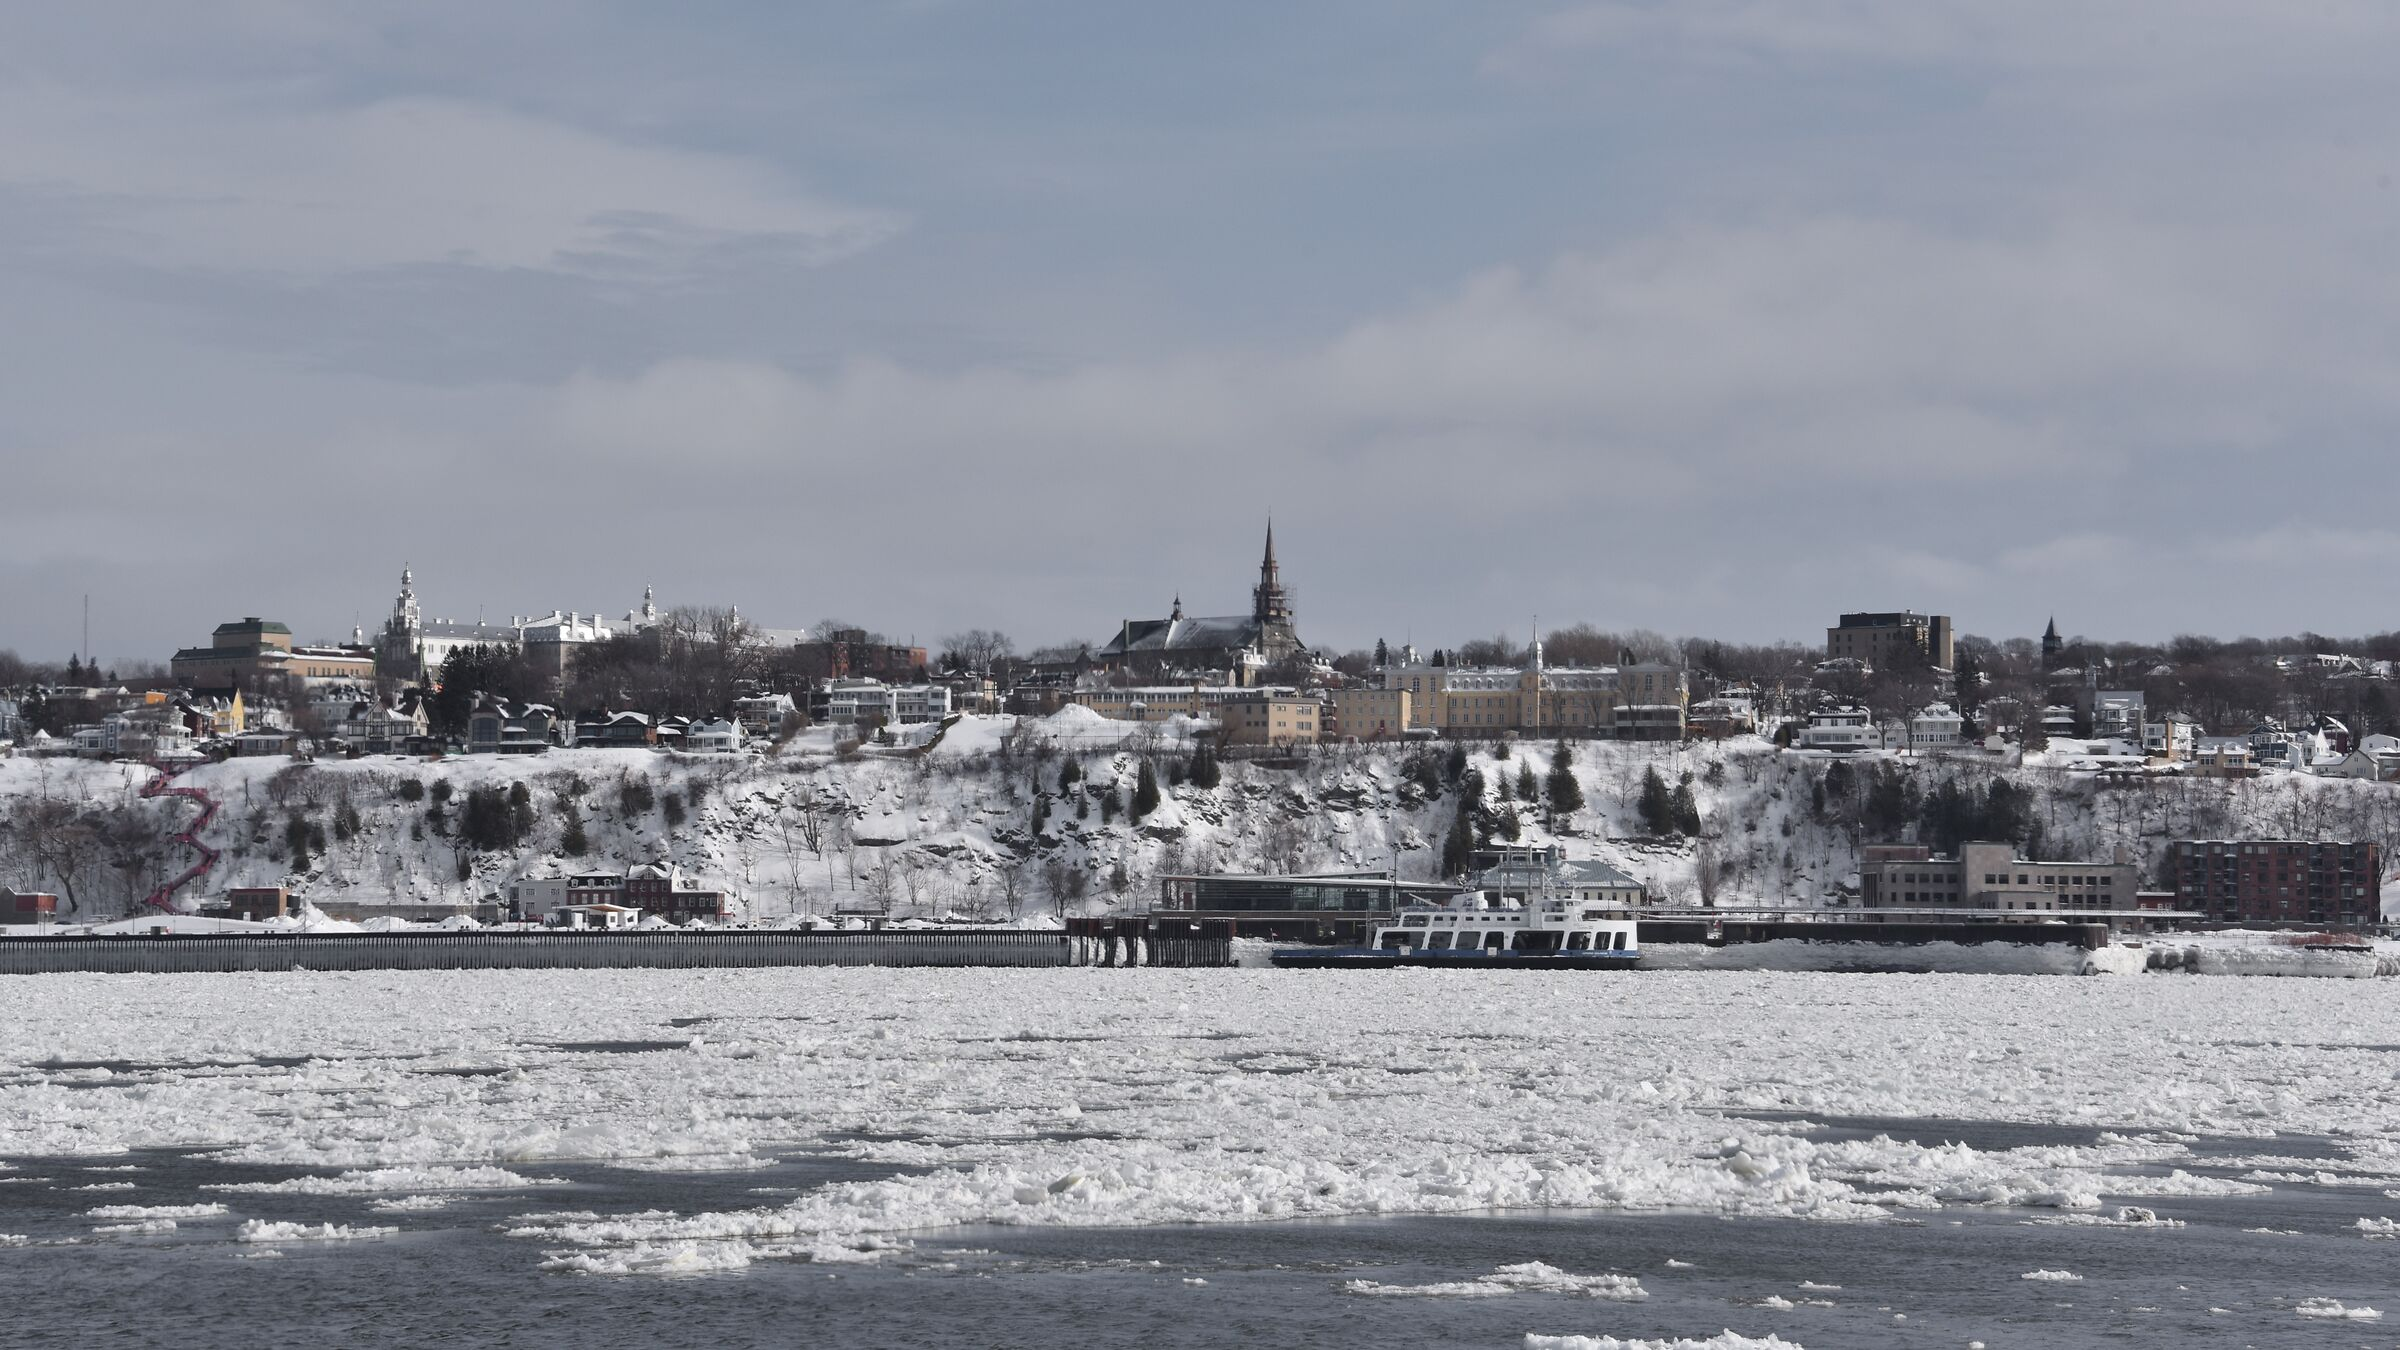 The winter cold of the season in Quebec...